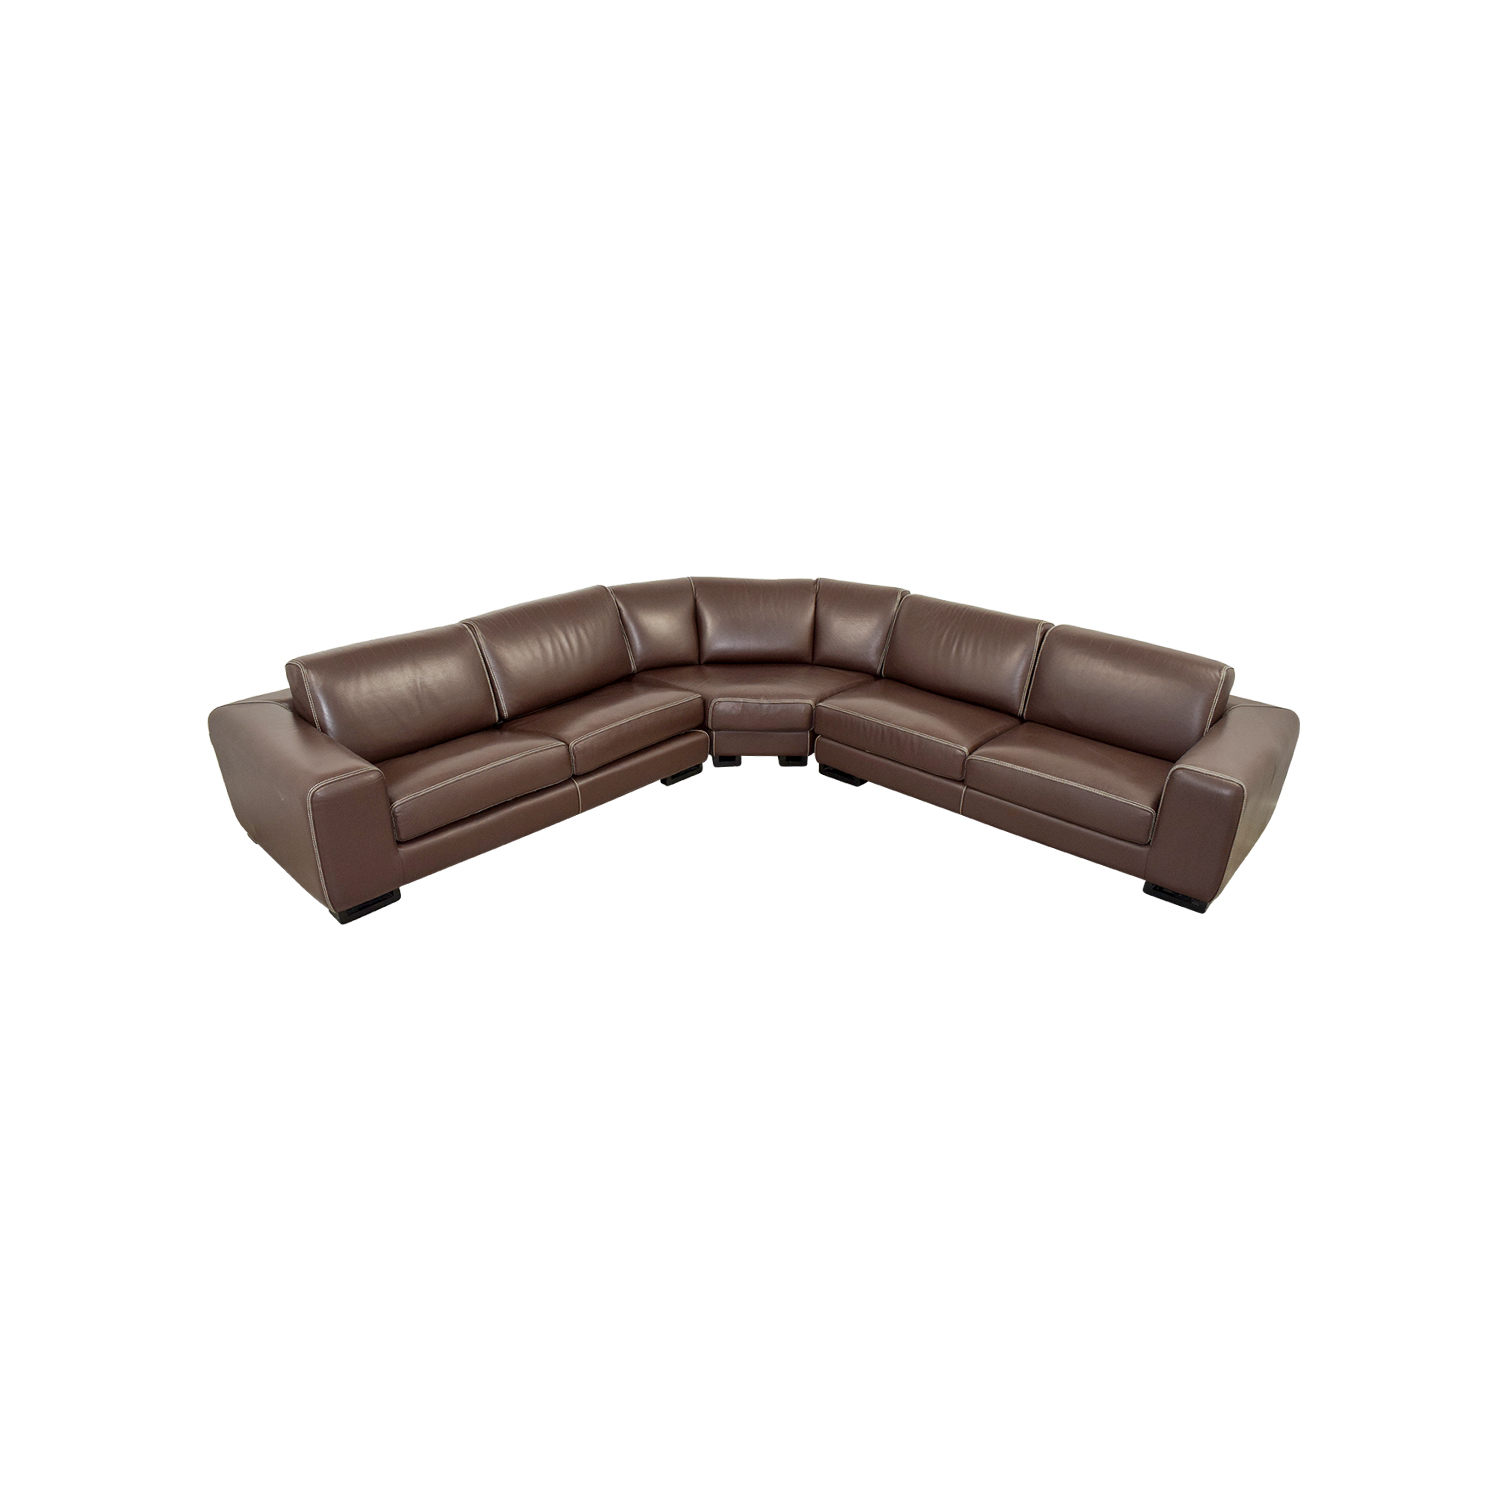 83 Off Roche Bobois Roche Bobois Brown Leather